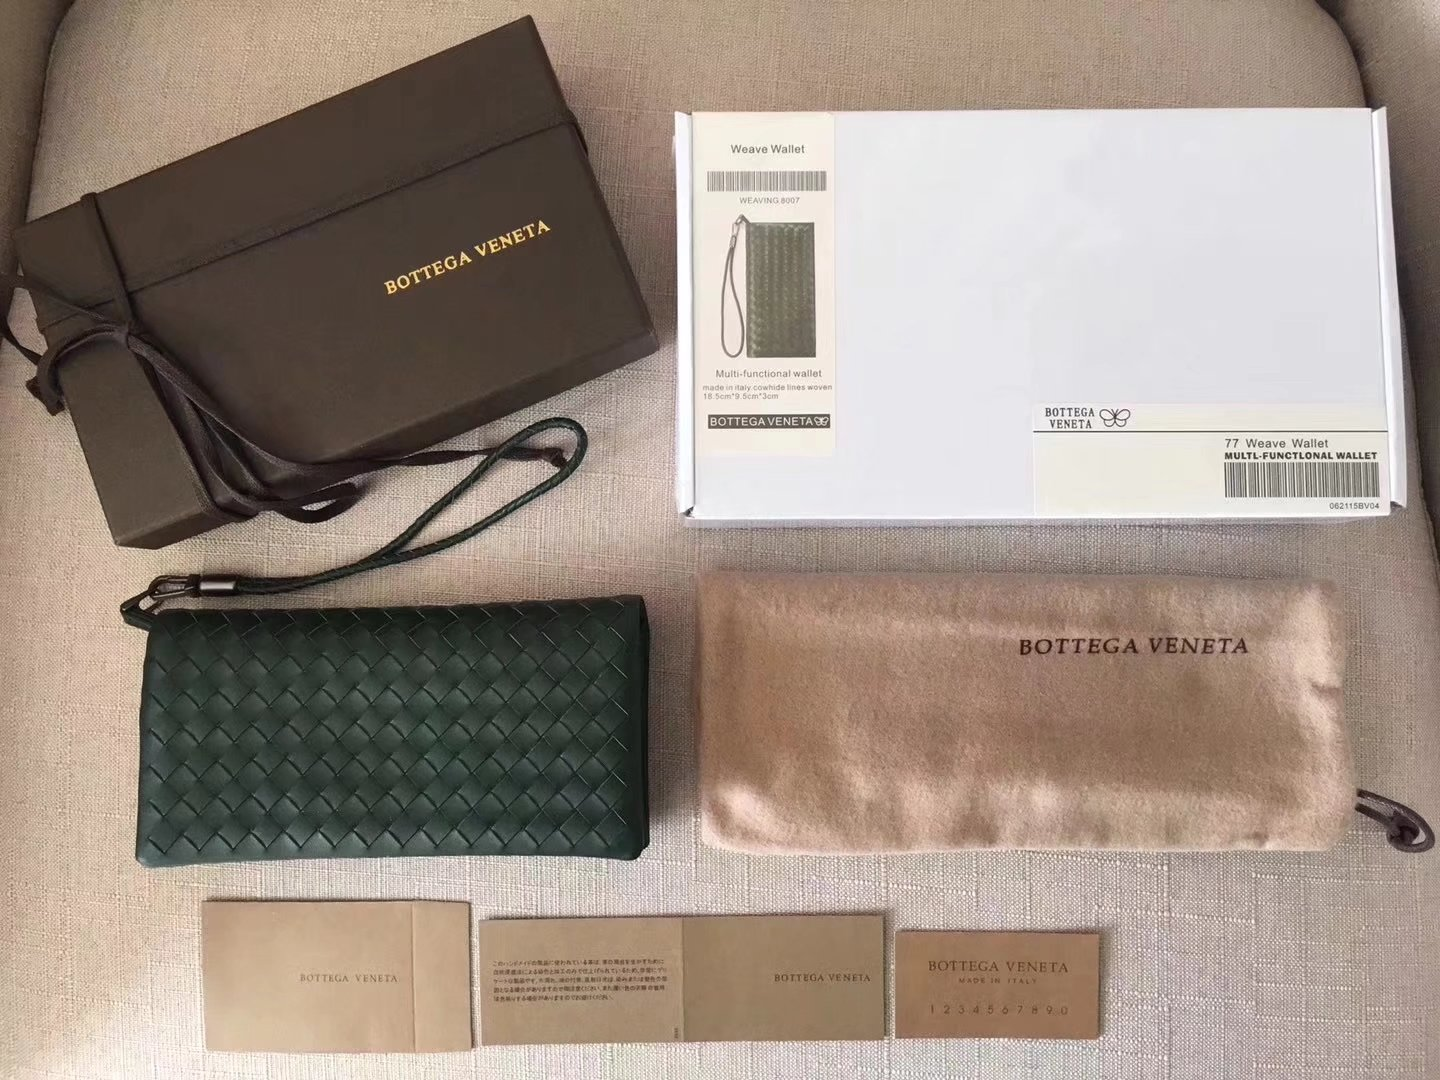 Bottega Veneta Intrecciato Nappa Leather Women Wallet With Leather Wristlet Green